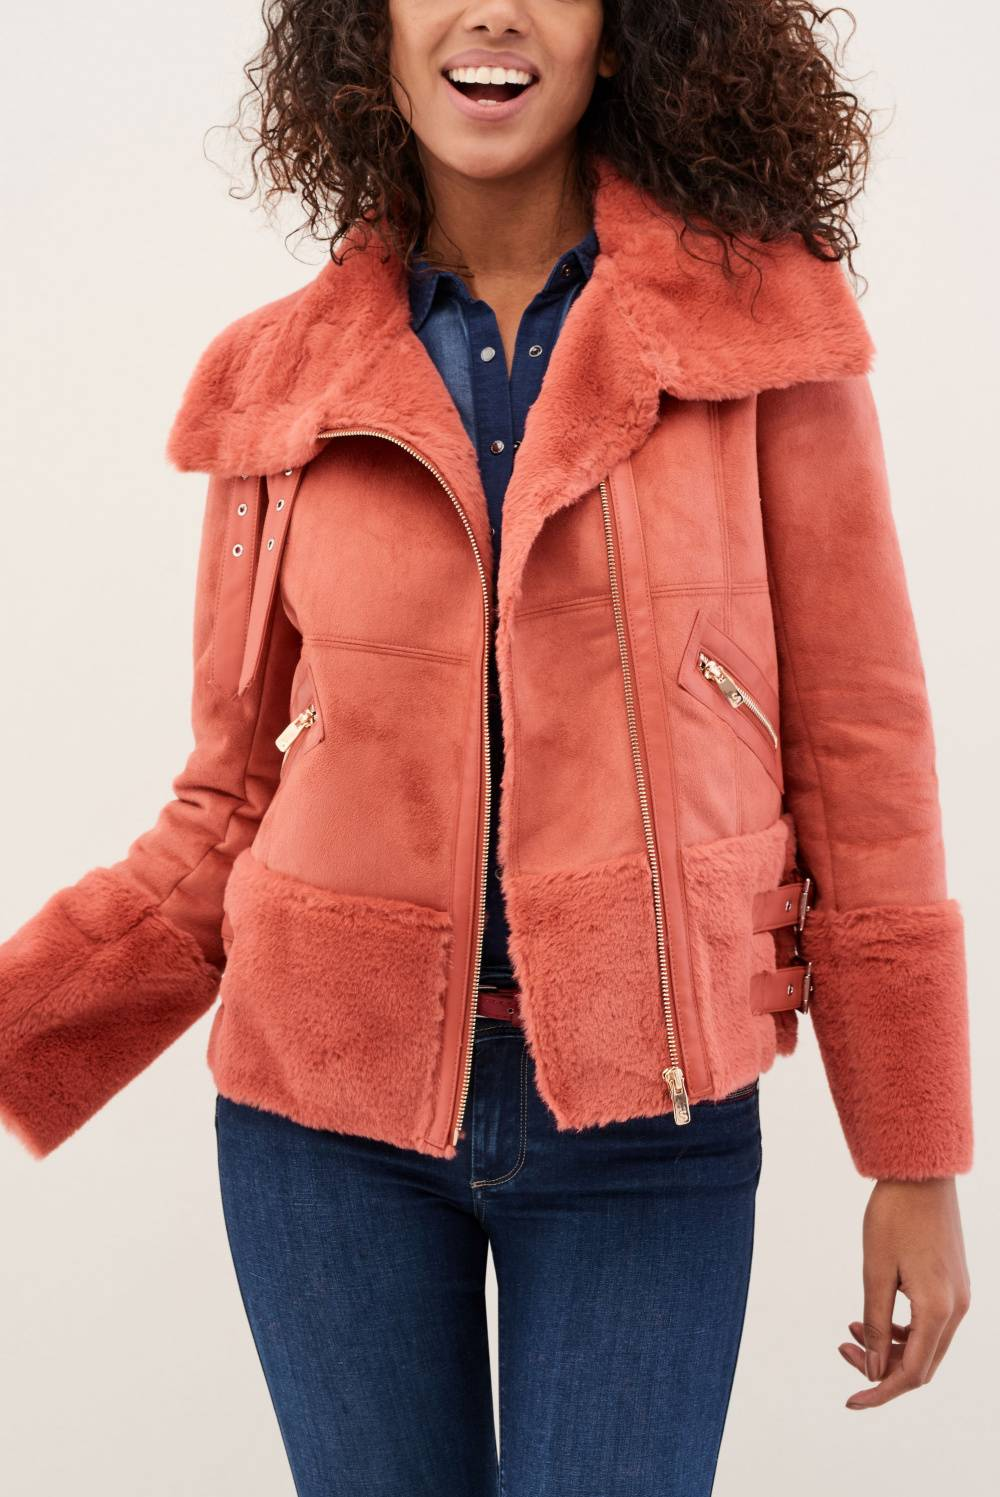 Coat with fur and zippers - Salsa